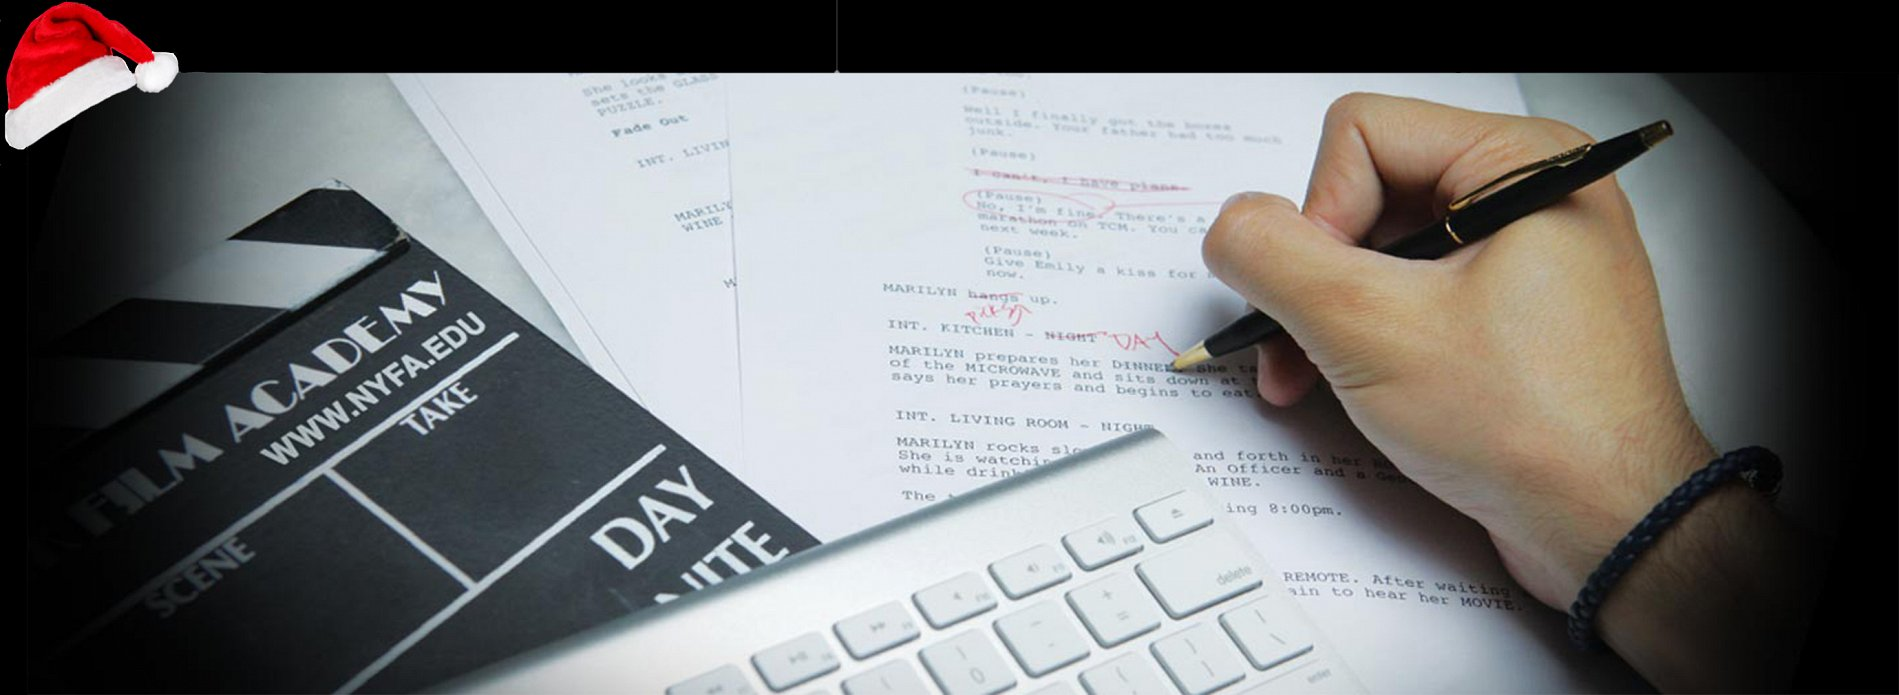 help with script writing Need assignment help with script writing ontact our online chat support for instant help.